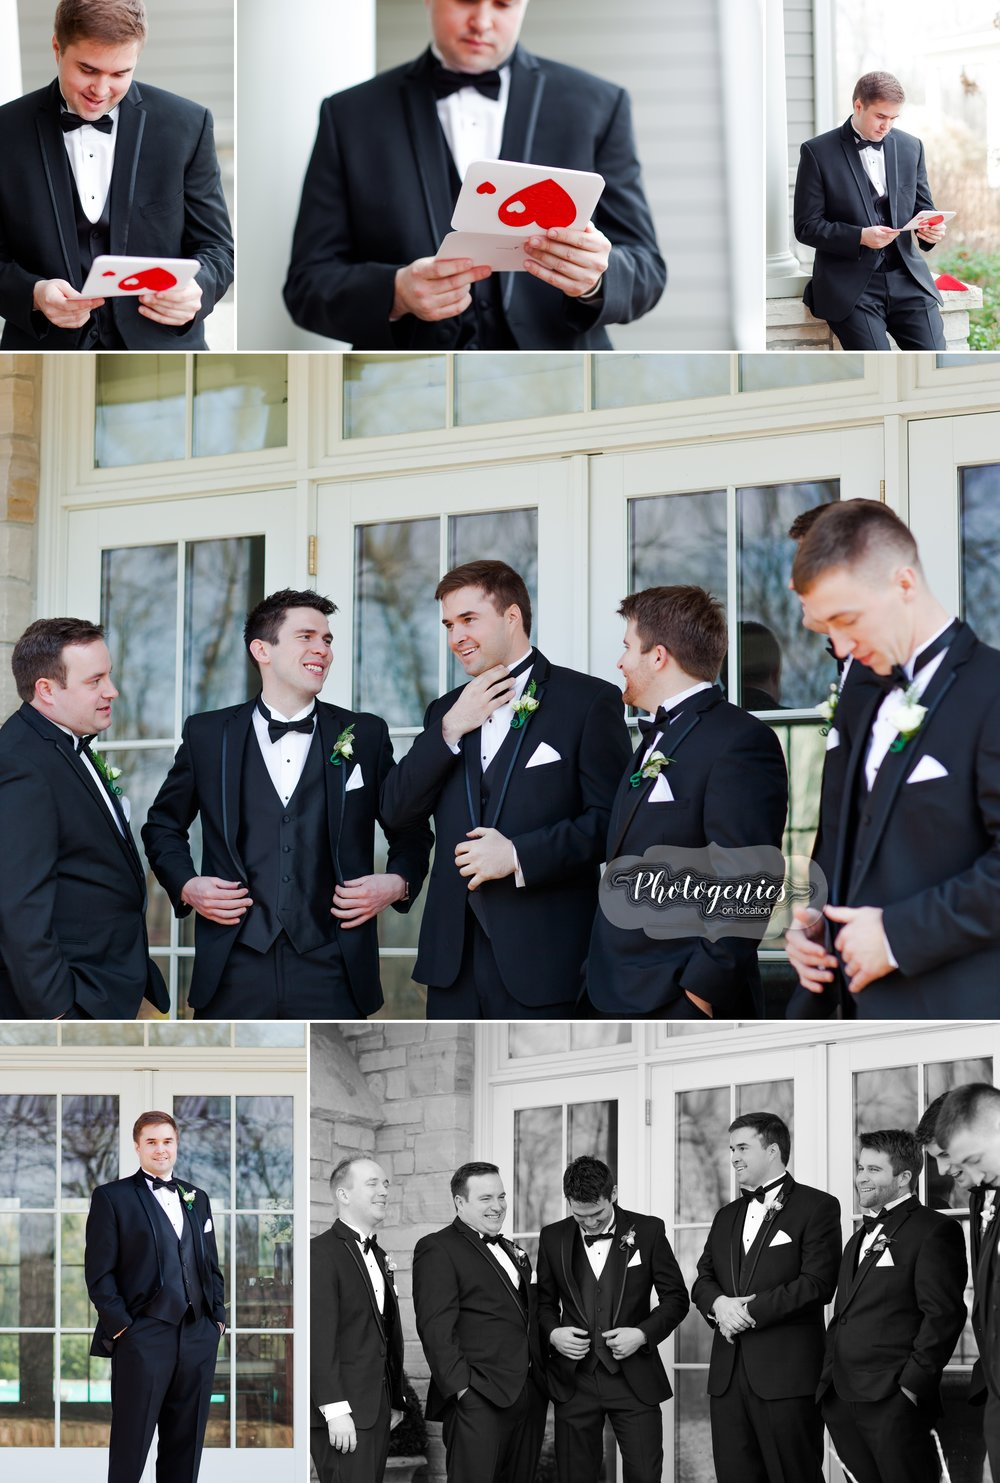 nye_wedding_new_years_eve_photography_groom_getting_ready_groomsmen_candid_poses_details